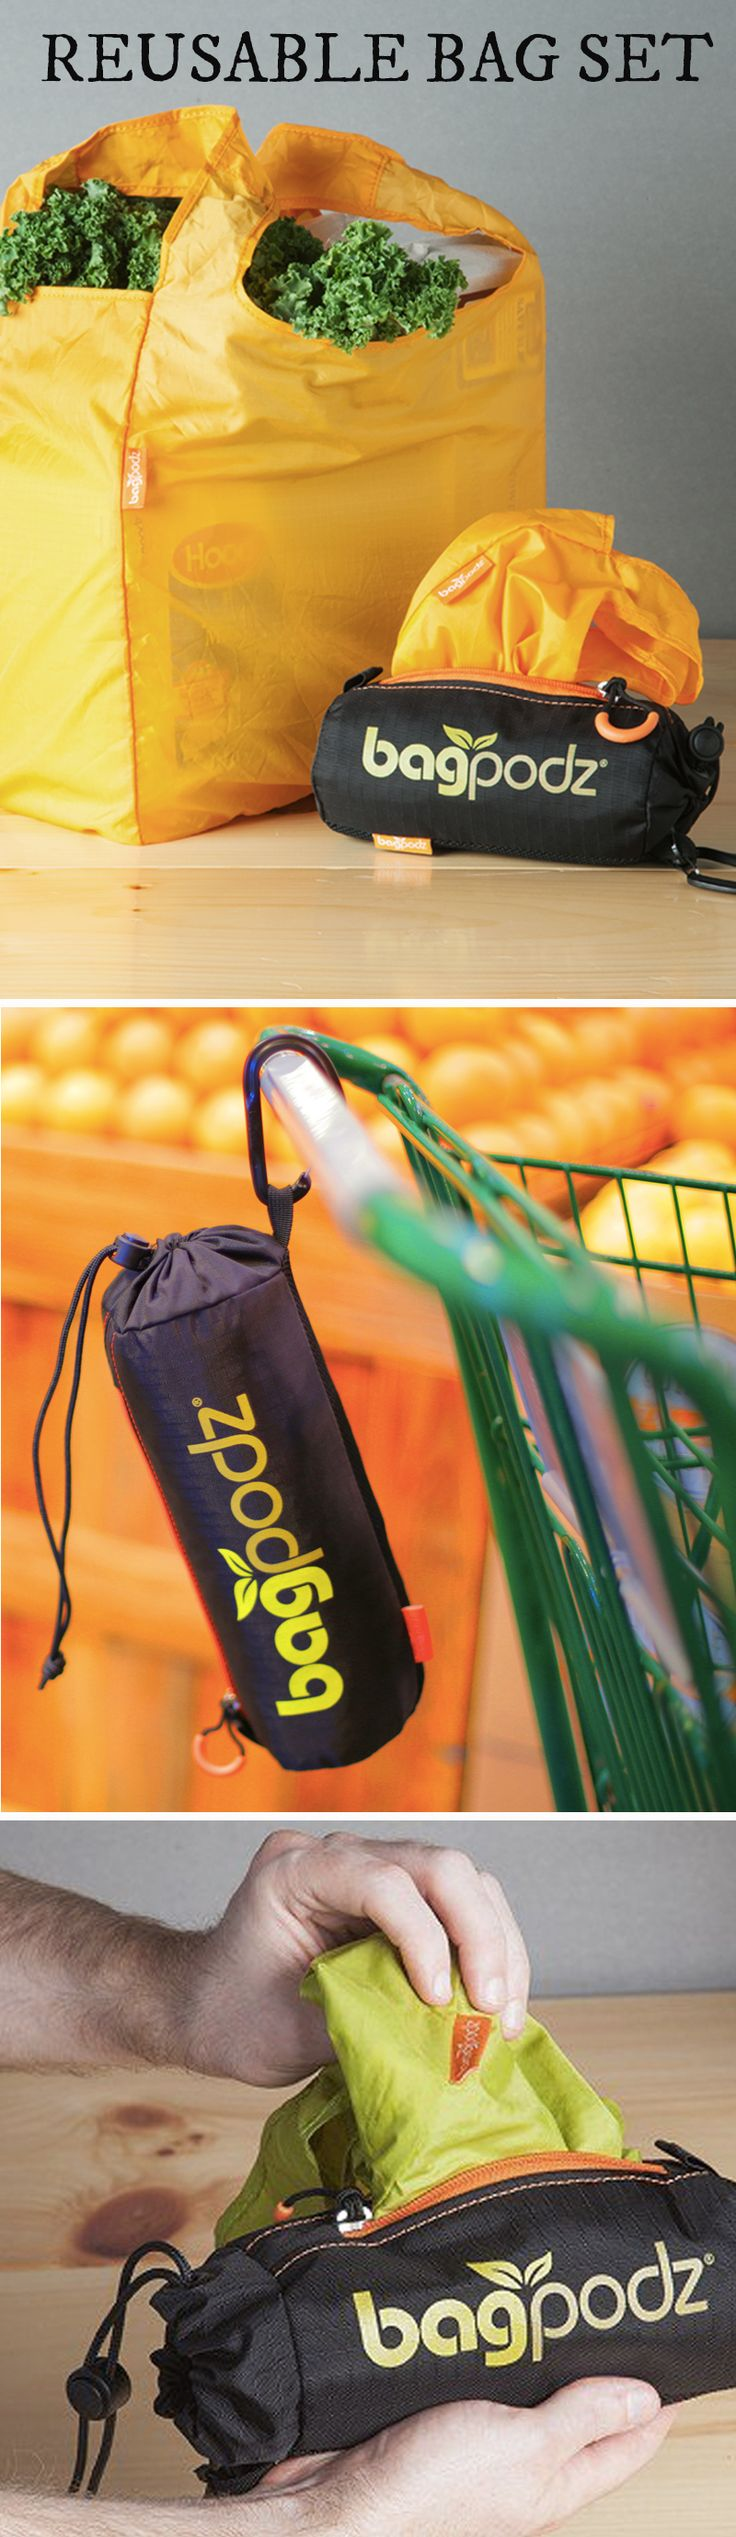 BagPodz is a reusable bag set that stays neatly packed and on hand whenever you need them.